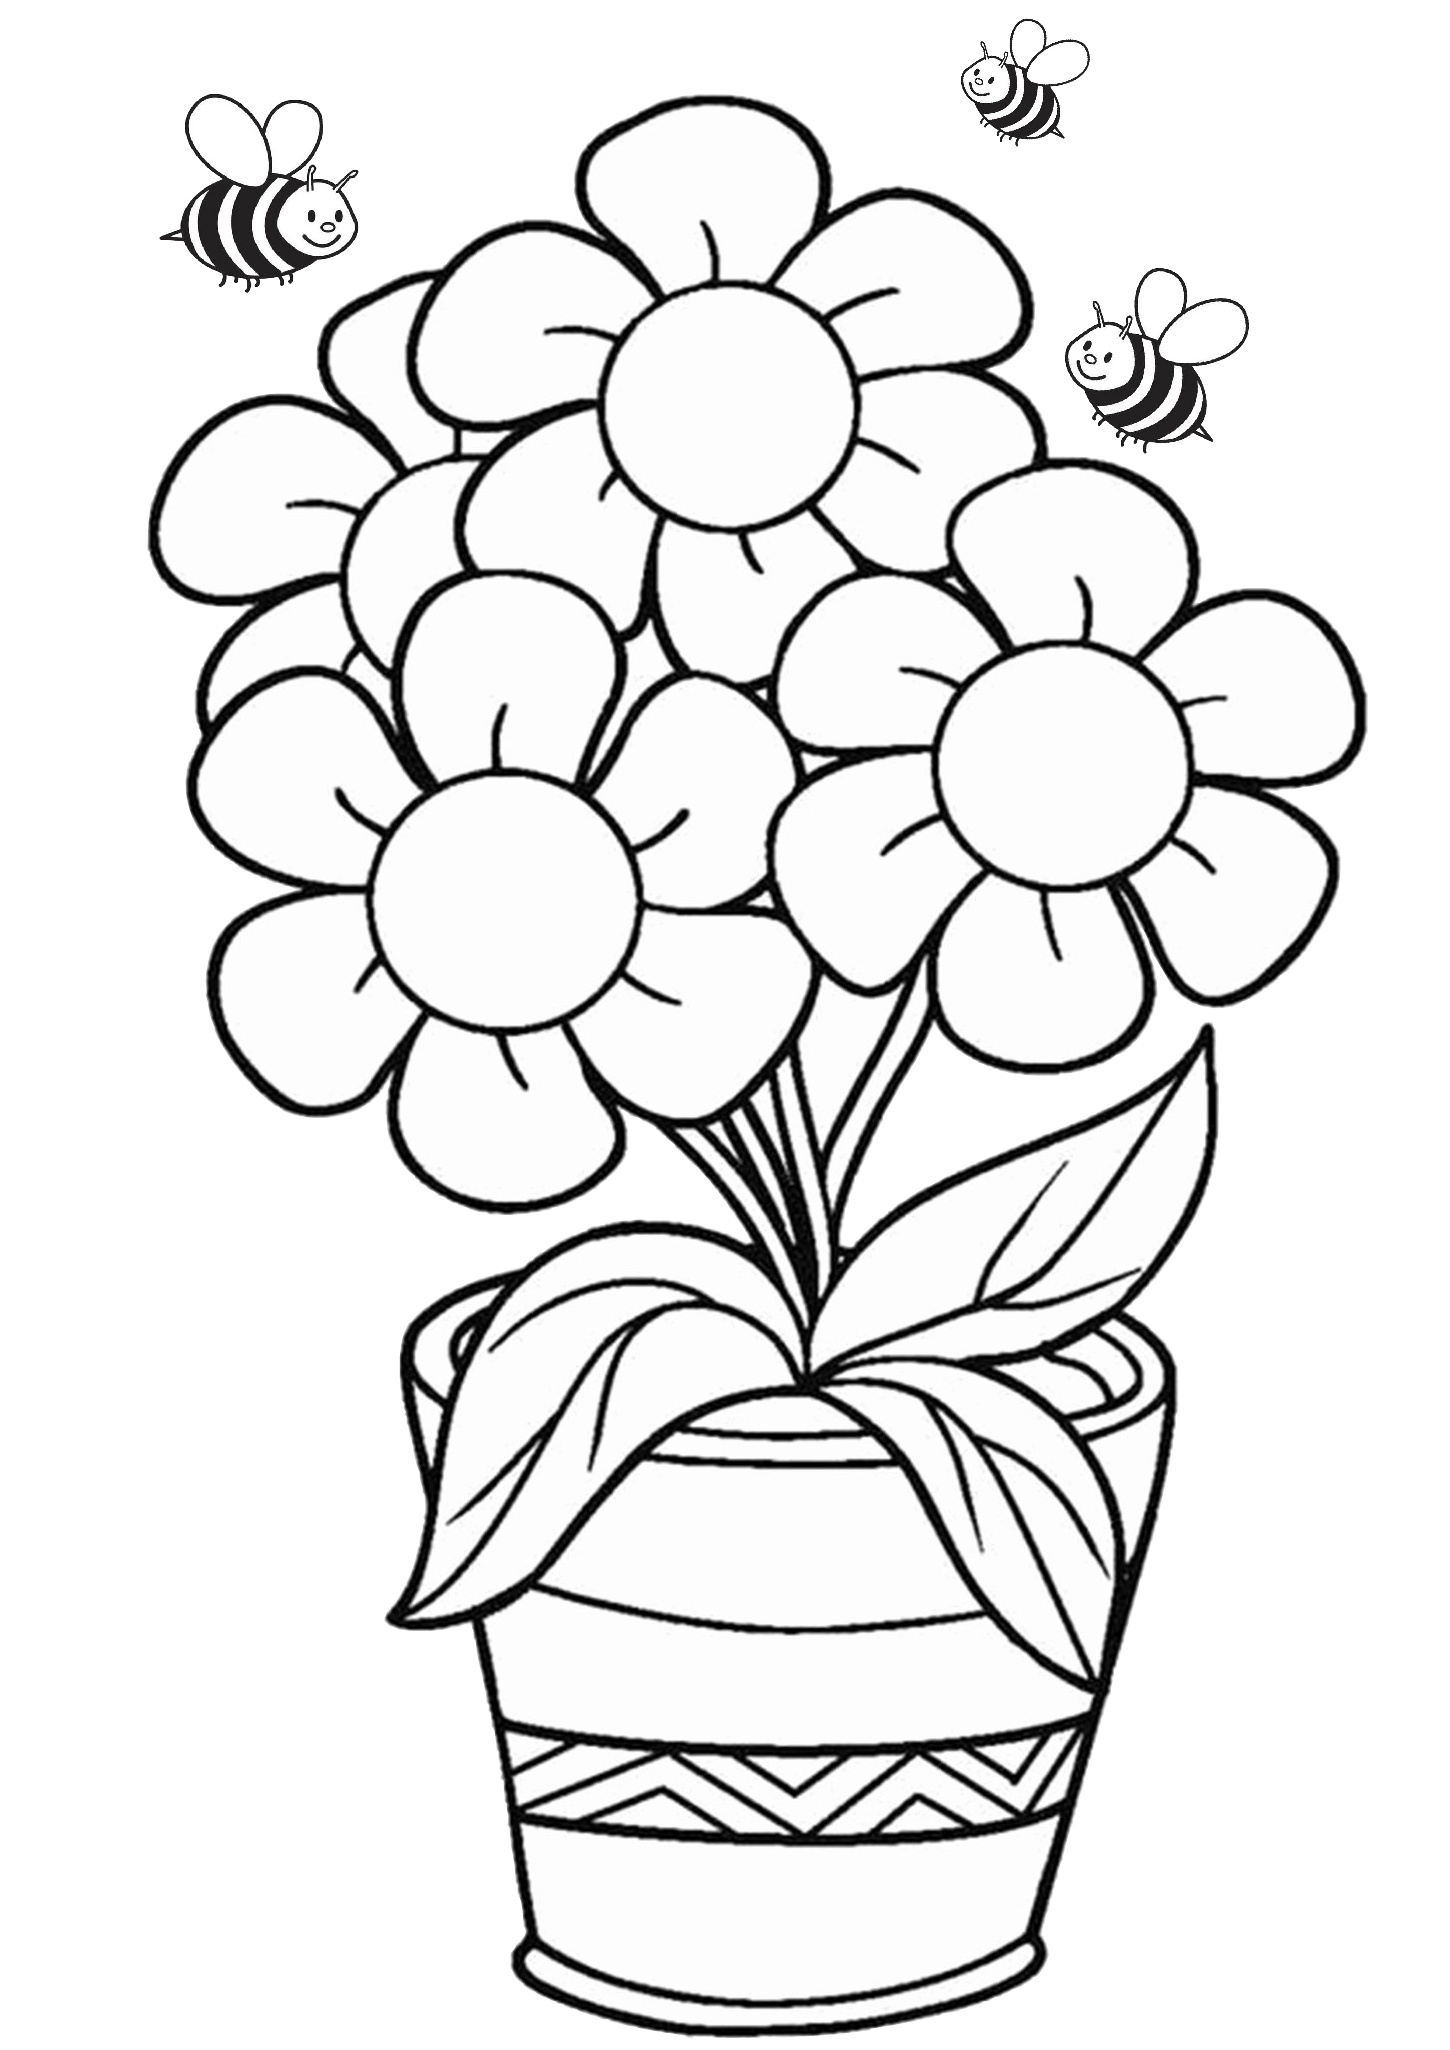 free coloring pages of flowers free flower coloring pages for kids printable pdf print of pages flowers free coloring